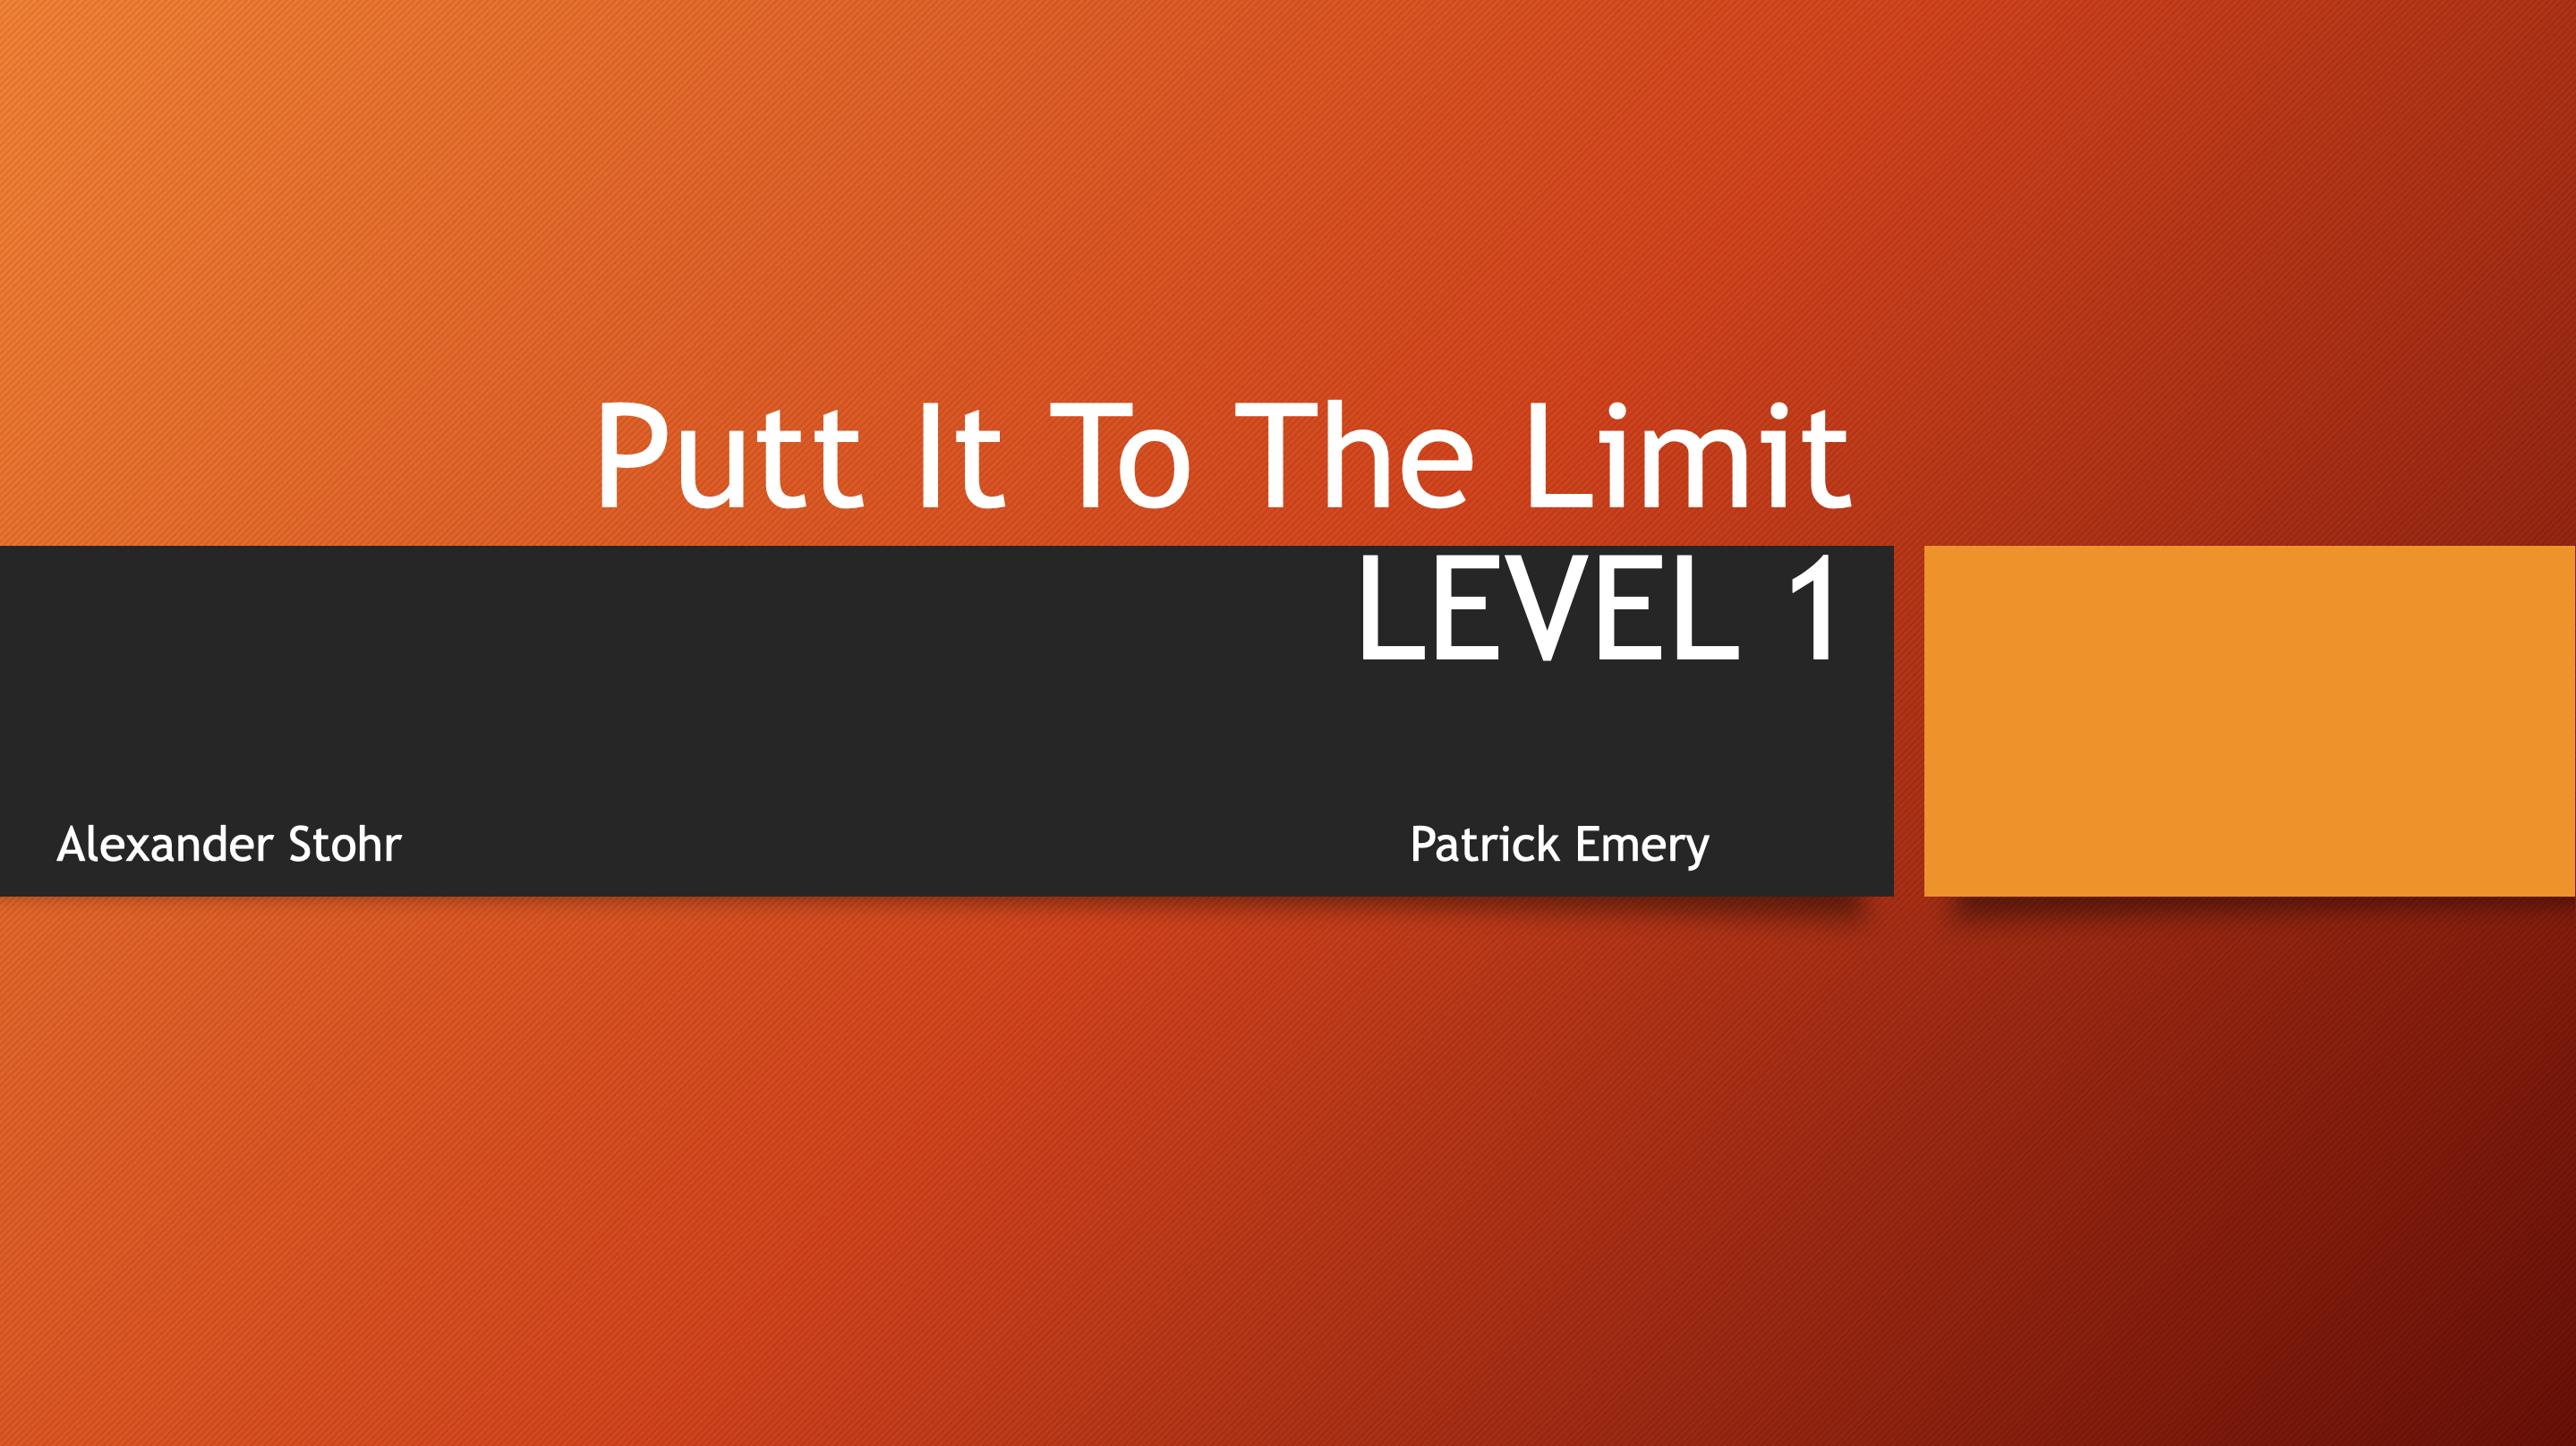 Putt It To The Limit